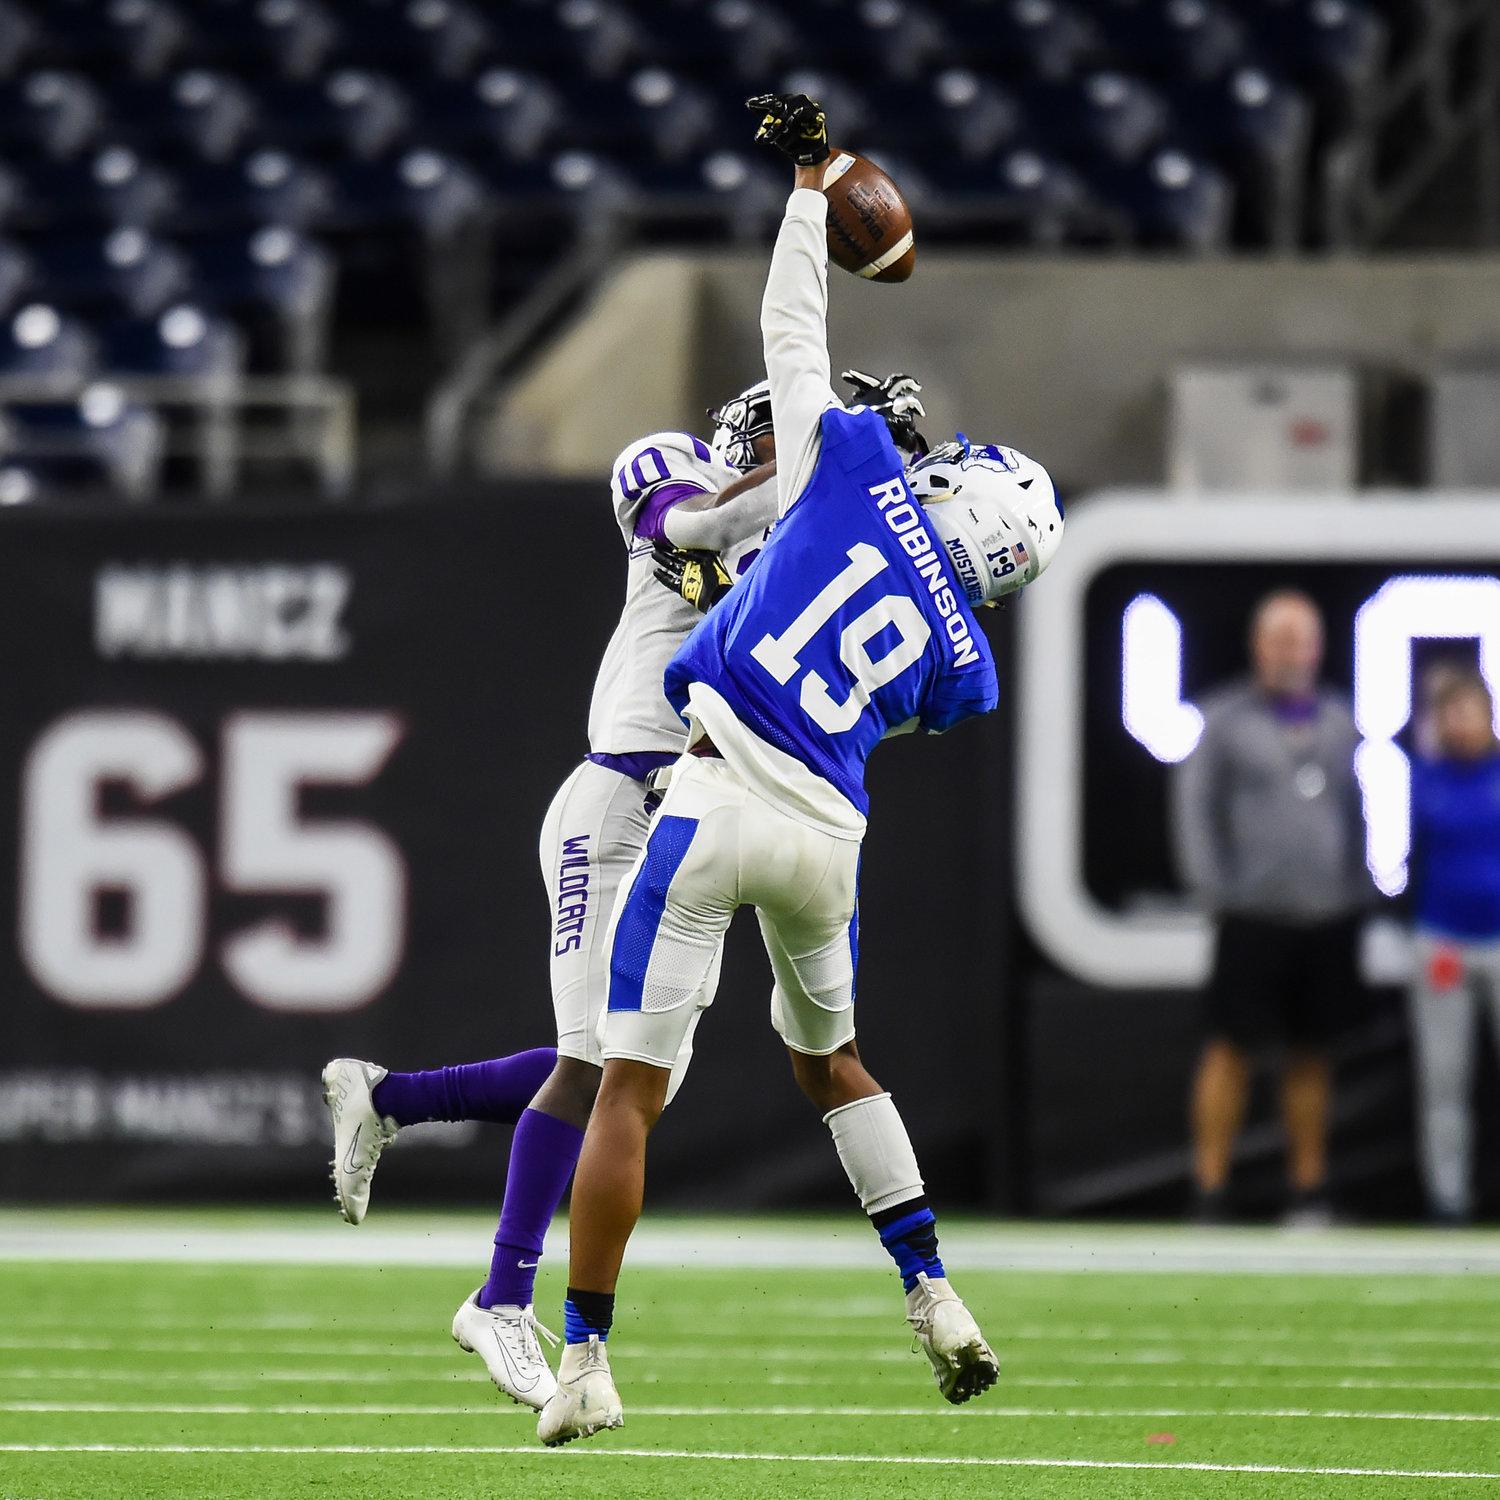 Houston, Tx. Nov. 30, 2019: Taylor's Hollis Robinson (19) breaks up a pass intended for Humbles Donald Harper (10) during the regional semifinal playoff game between Katy Taylor and Humble at NRG Stadium in Houston. (Photo by Mark Goodman / Katy Times)